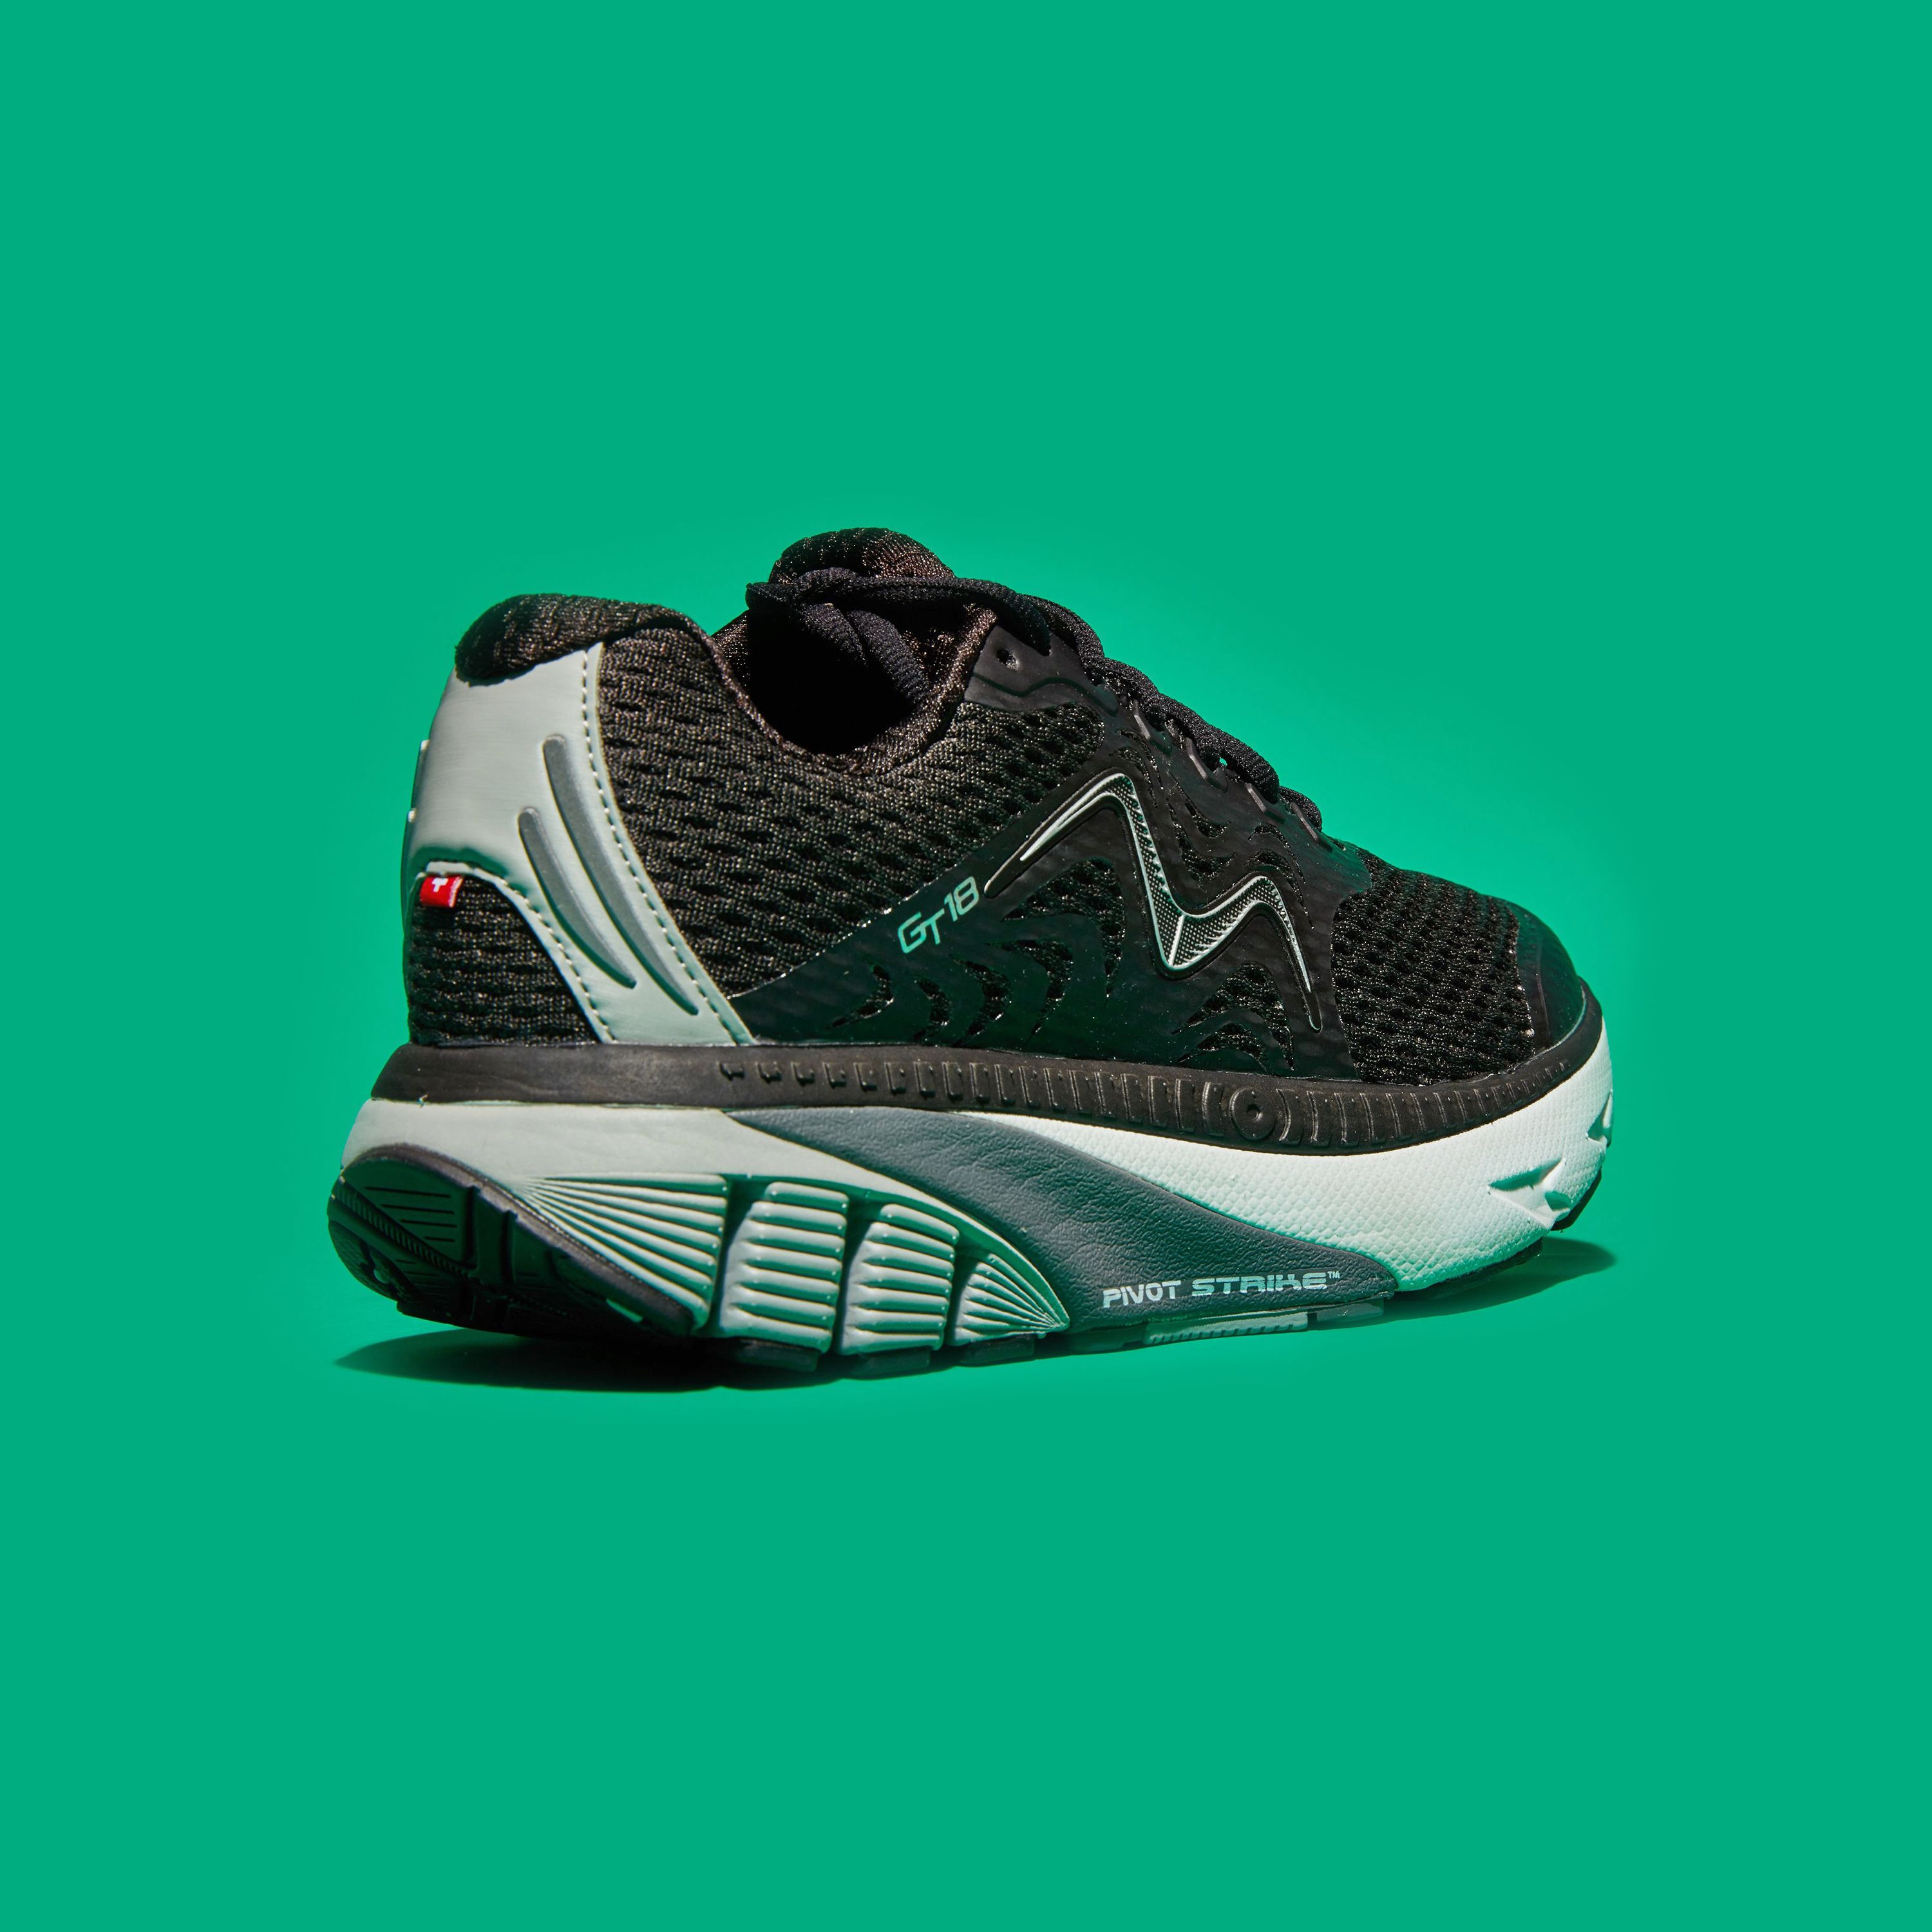 MBT GT18 Shoe Review | Cushion Running Shoes